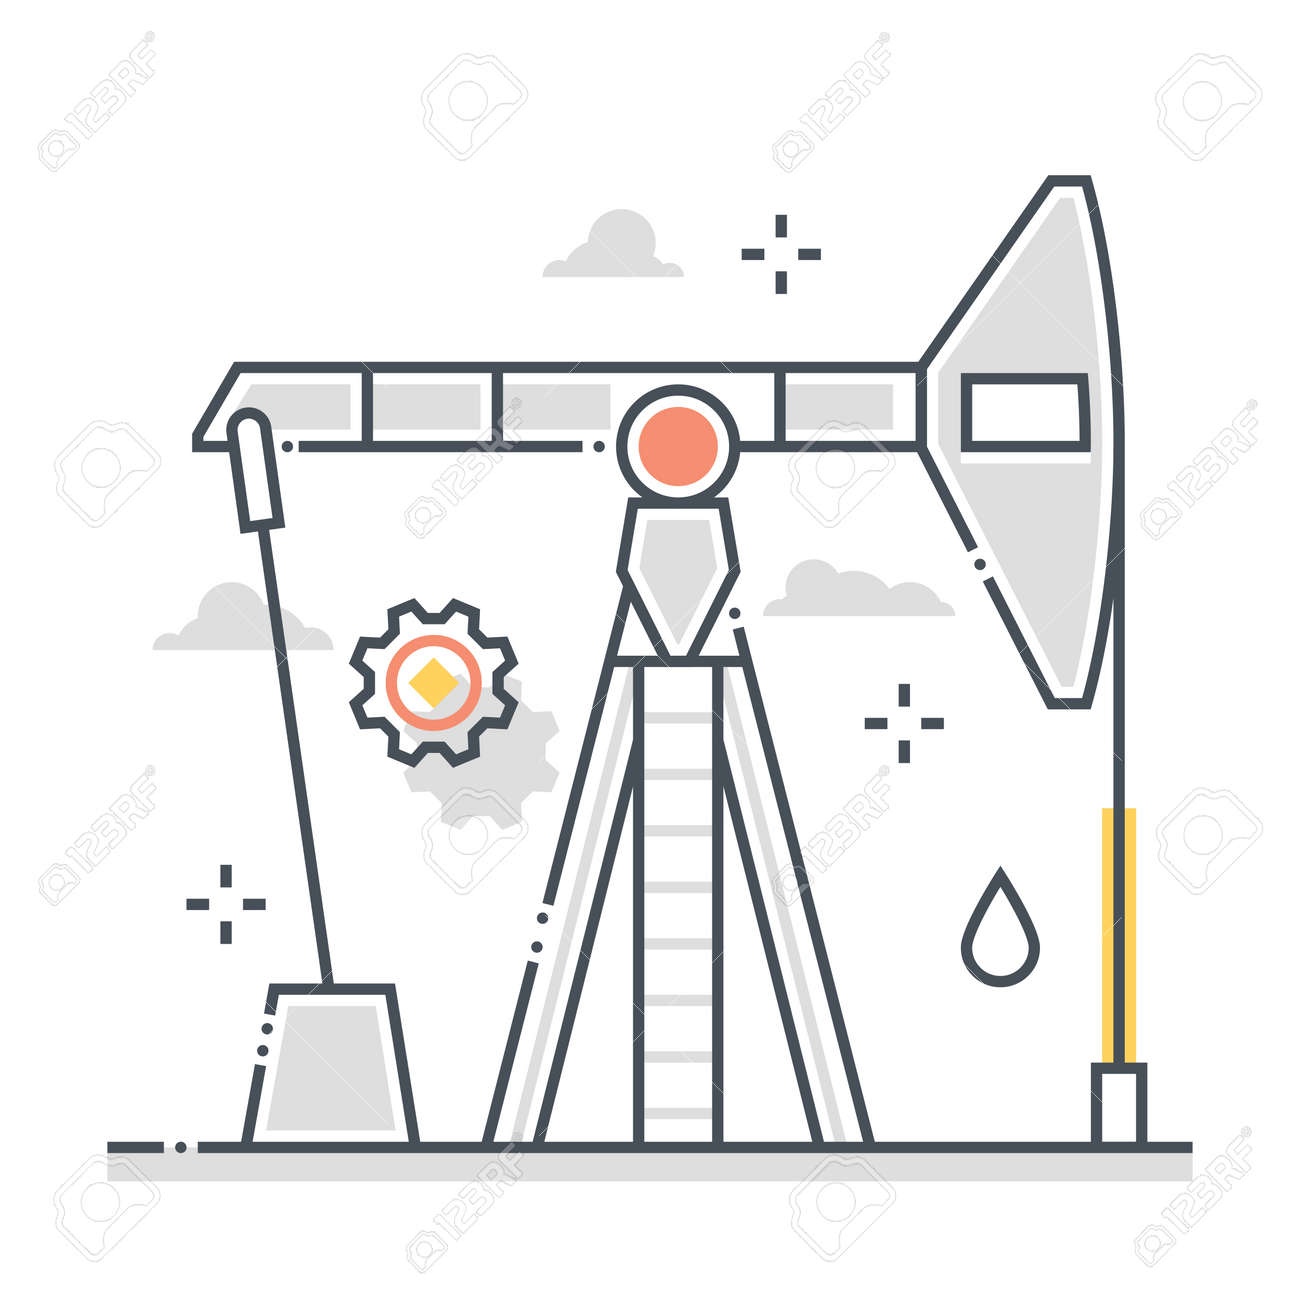 Crossing swords related color line vector icon, illustration. The icon is about weapon, fight, match, crossed, win, combat. The composition is infinitely scalable. - 163698057